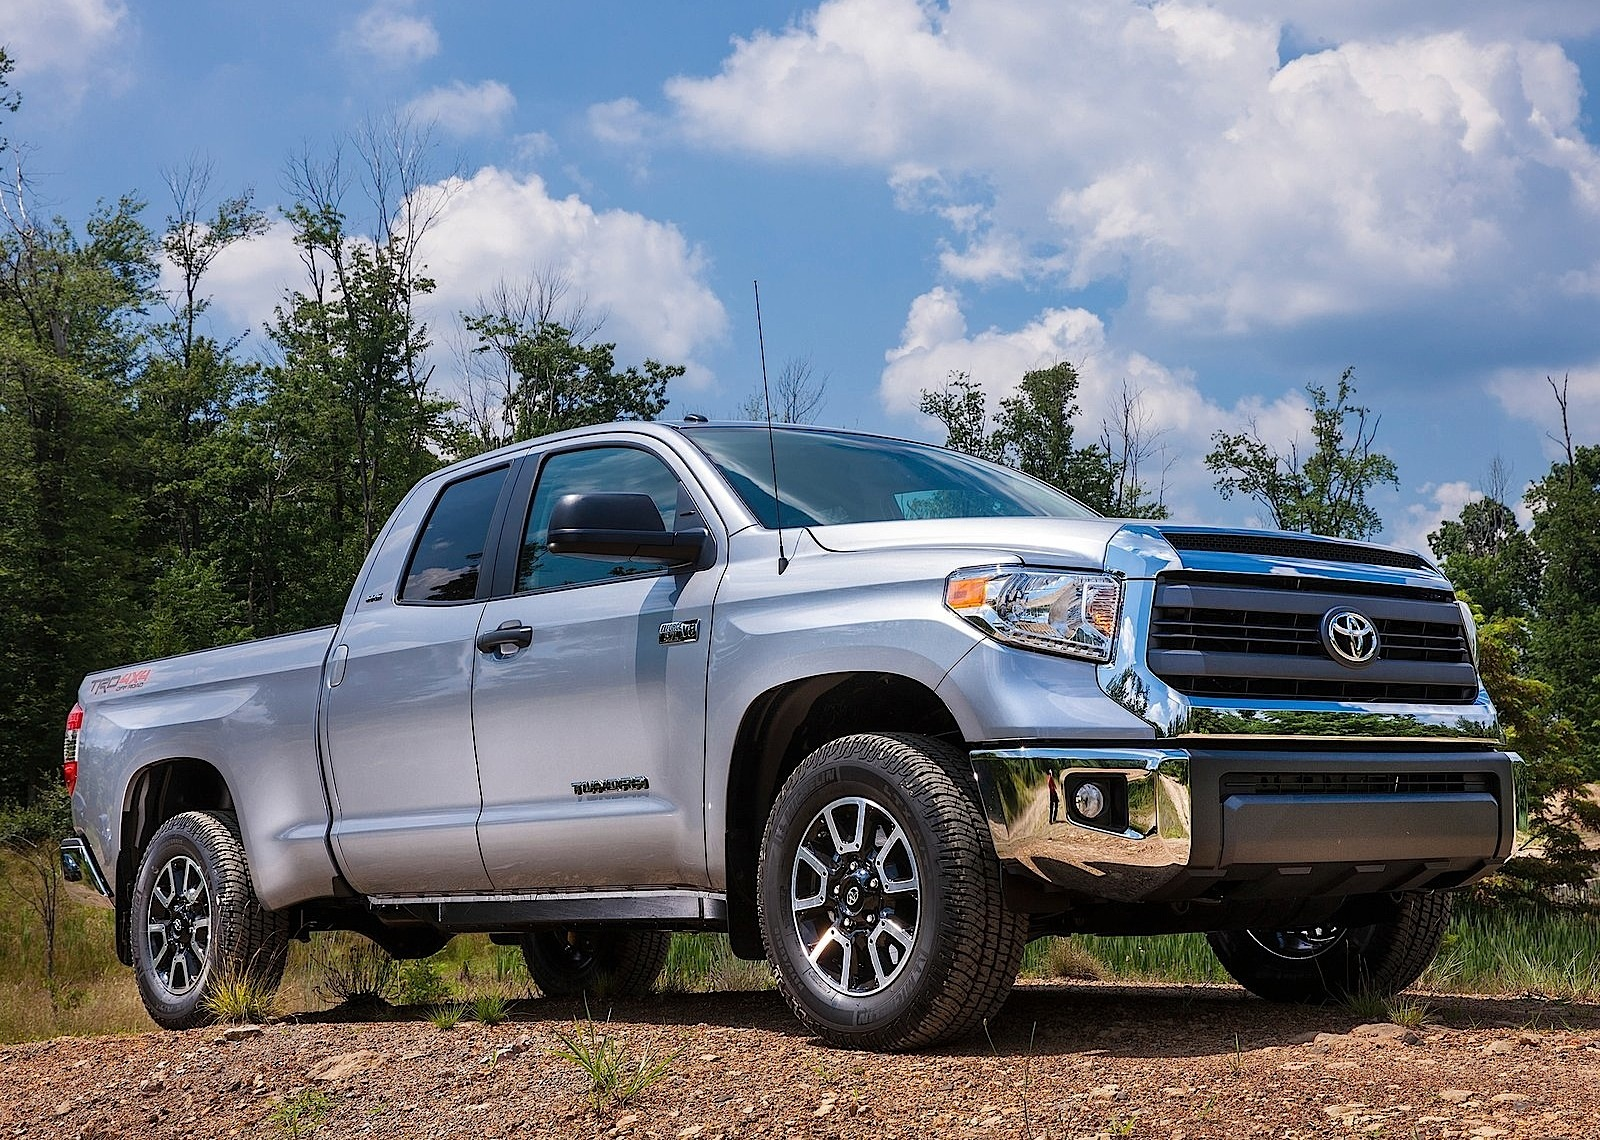 toyota tundra double cab specs photos 2013 2014 2015 2016 2017 2018 autoevolution. Black Bedroom Furniture Sets. Home Design Ideas